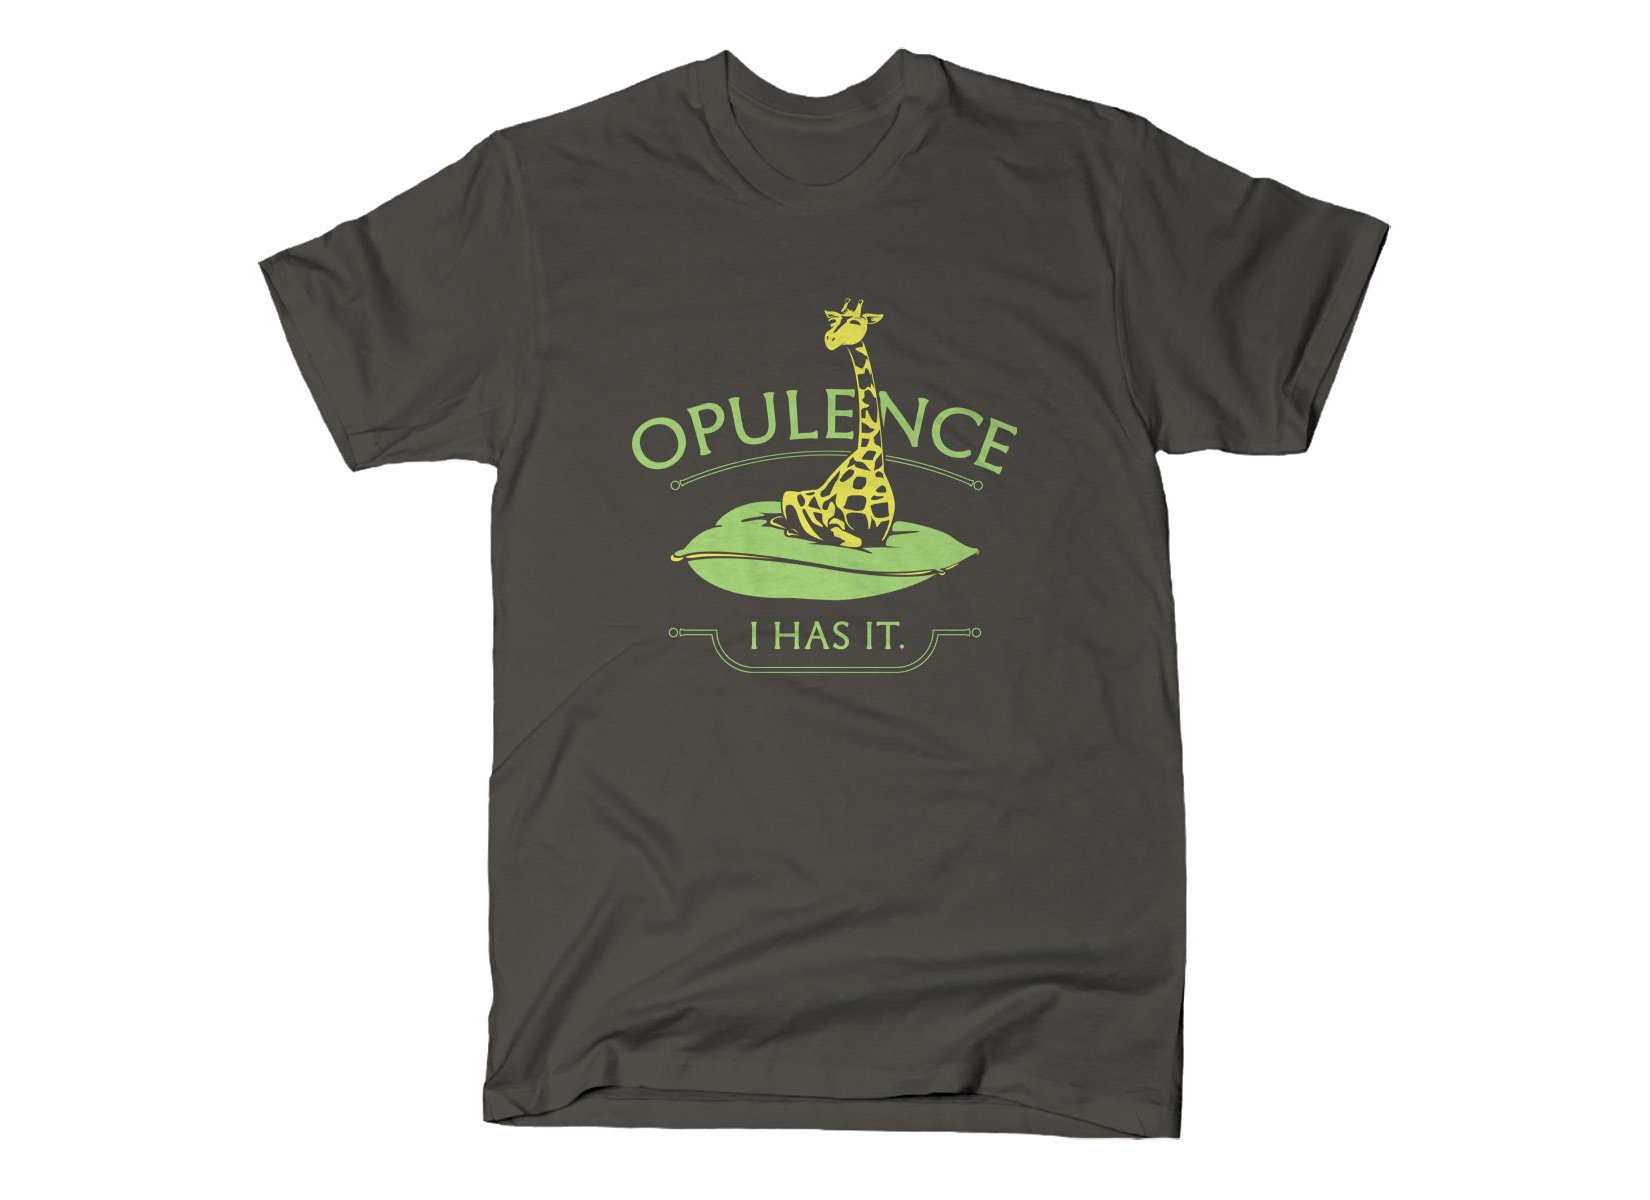 Opulence, I Has It. on Mens T-Shirt